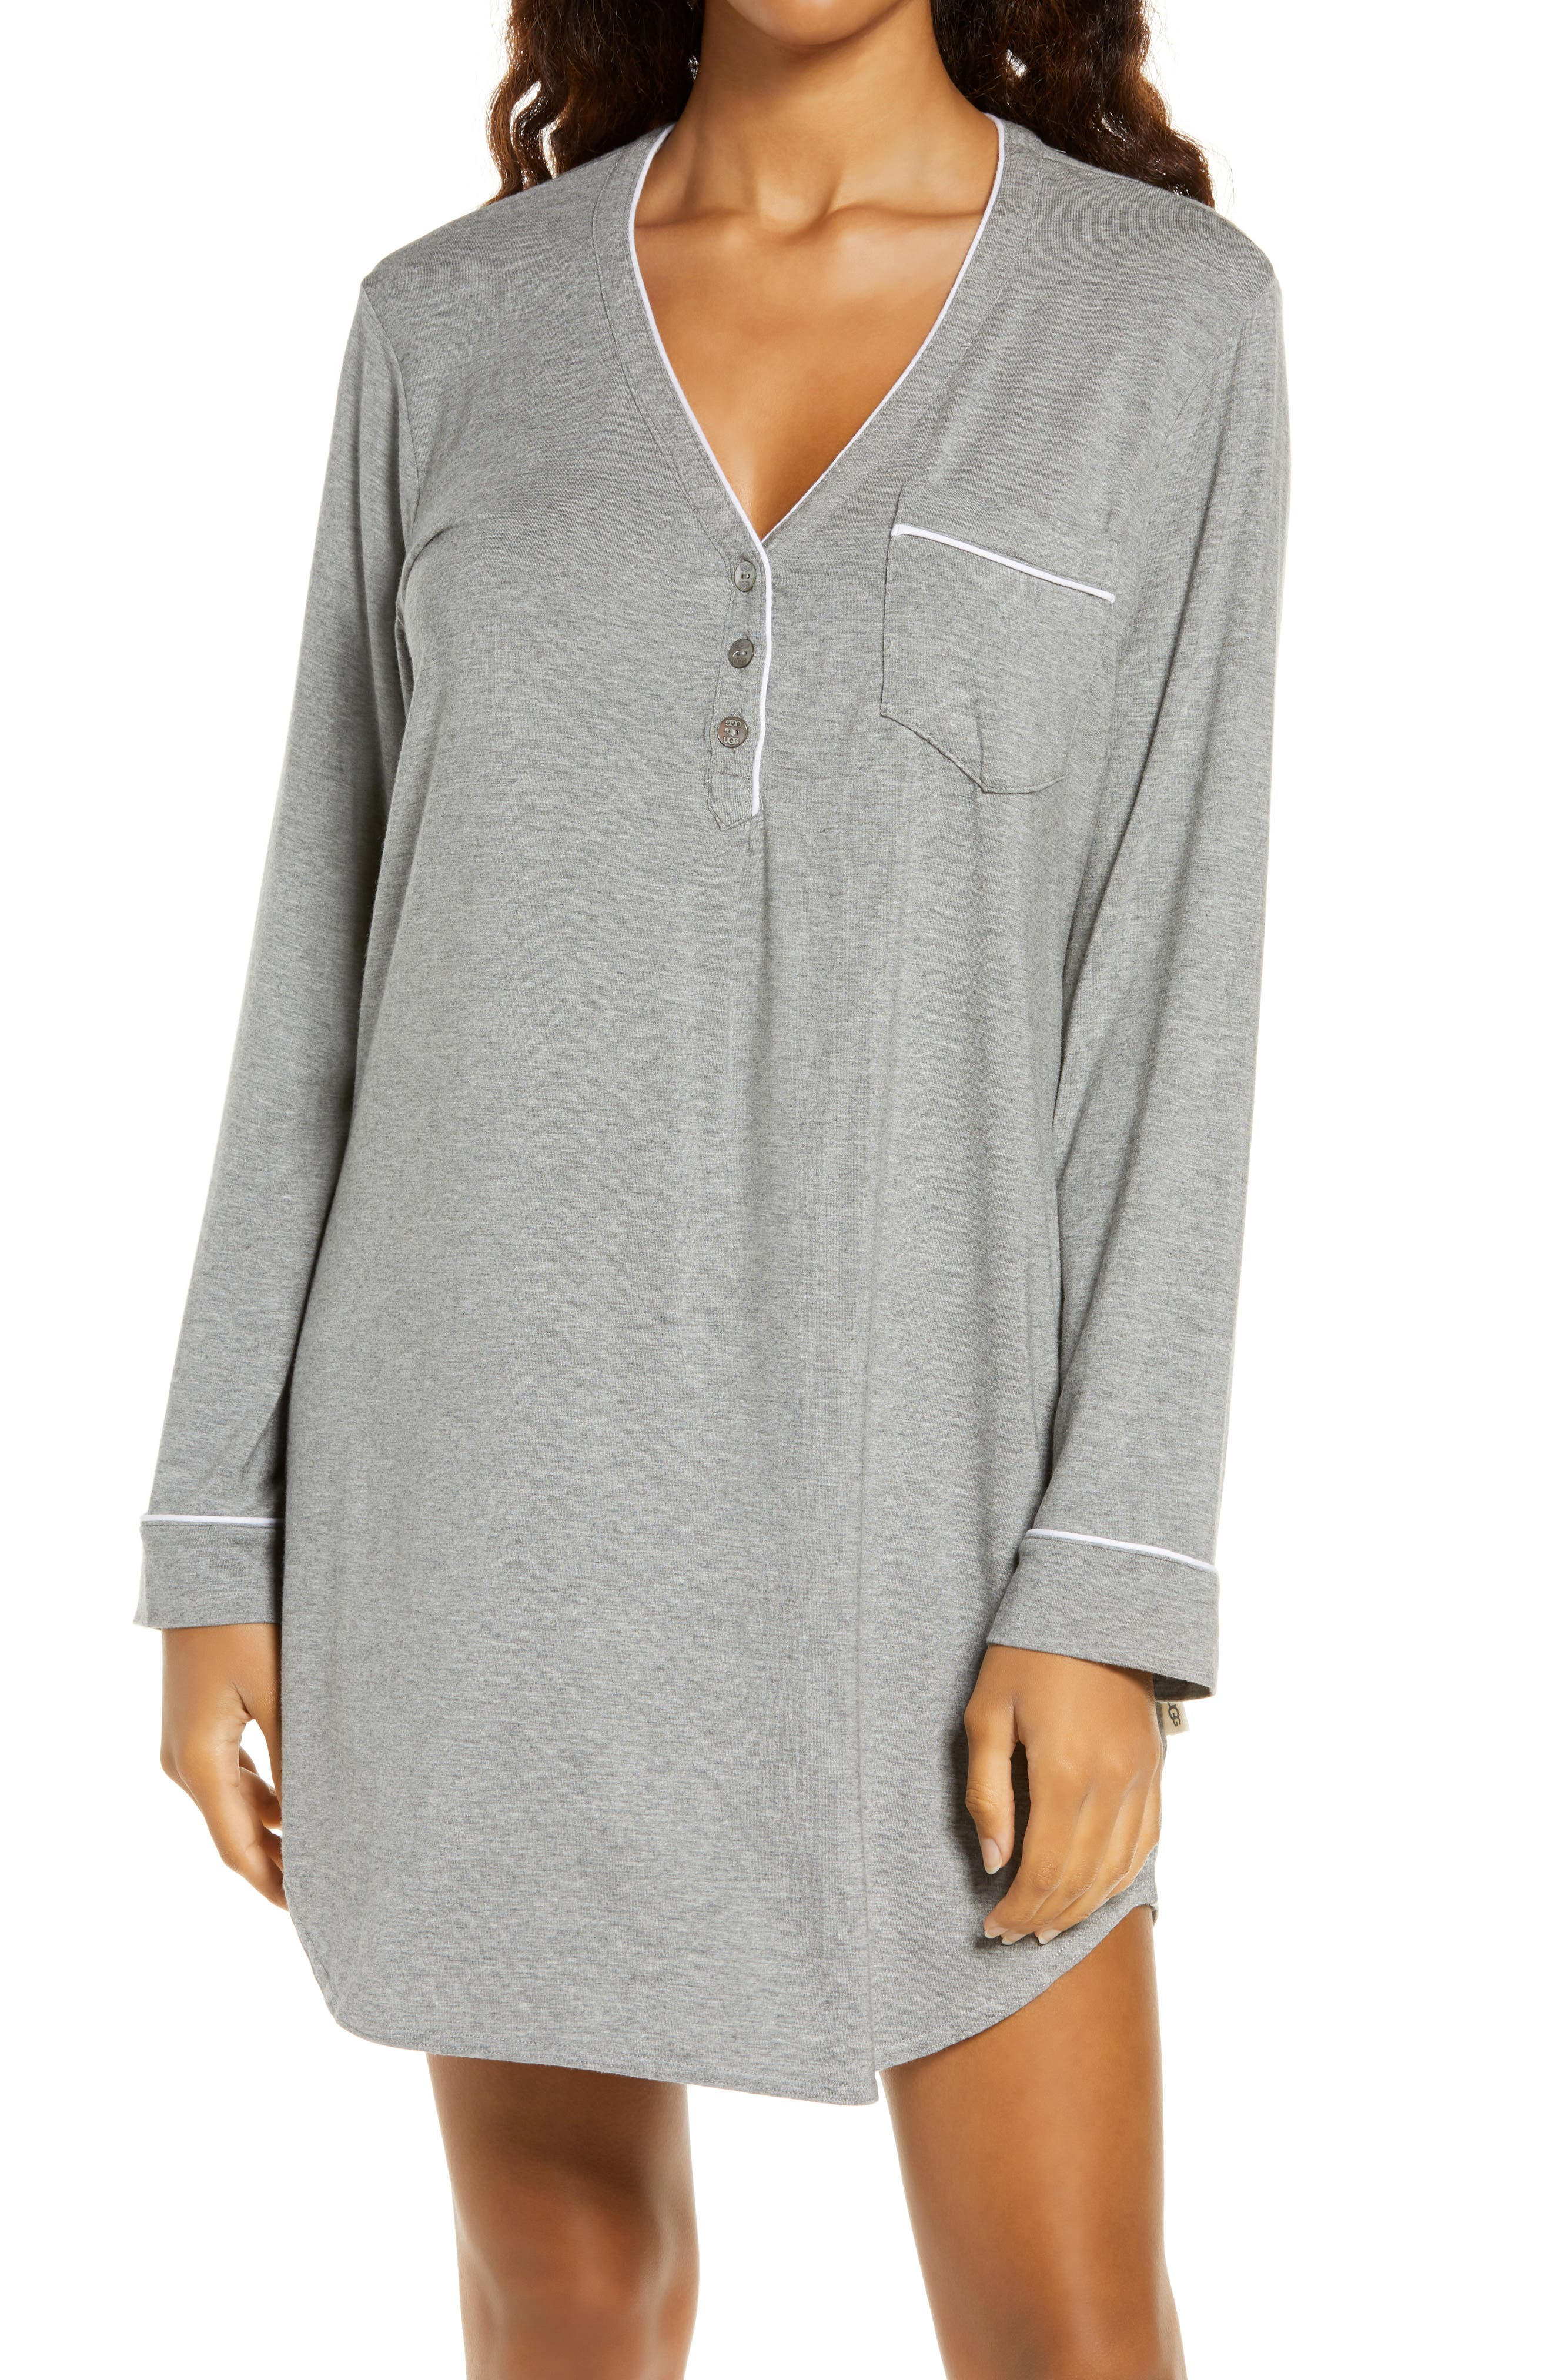 Get cozy-comfy for the evening in this jersey sleep shirt styled with a henley-style V-neck, a chest pocket and optic-white piped detailing. Style Name: UGG Henning Ii Henley Sleep Shirt. Style Number: 6094313. Available in stores.